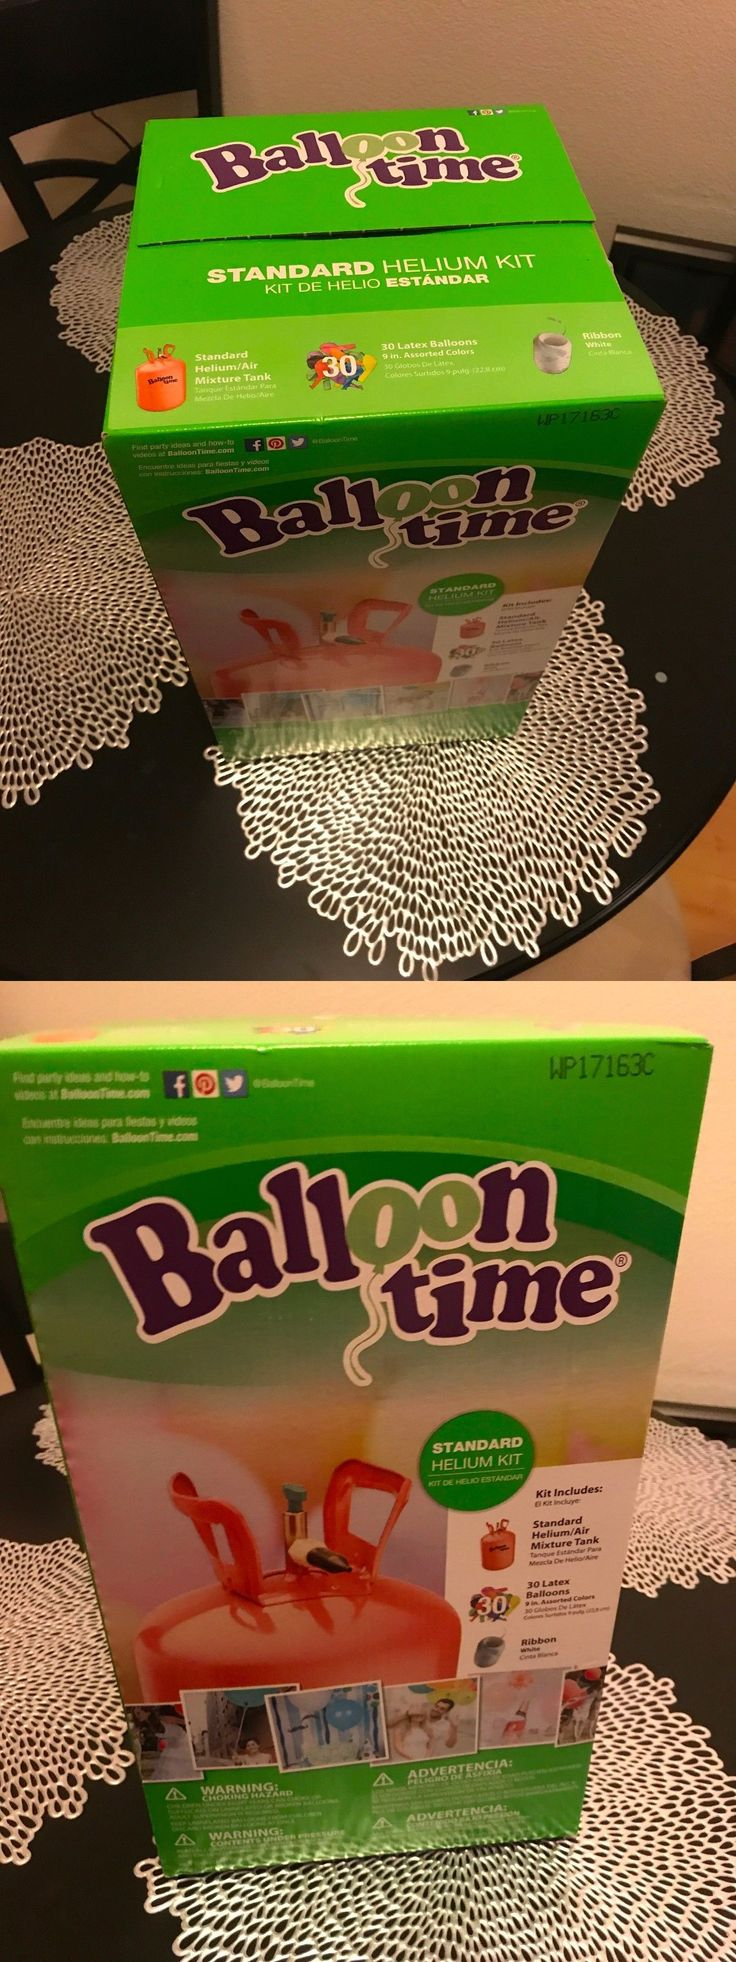 Balloons 26384: Brand New Balloon Time Standard Helium Kit *30 Balloons Included* Free Shipping! -> BUY IT NOW ONLY: $40.85 on eBay!